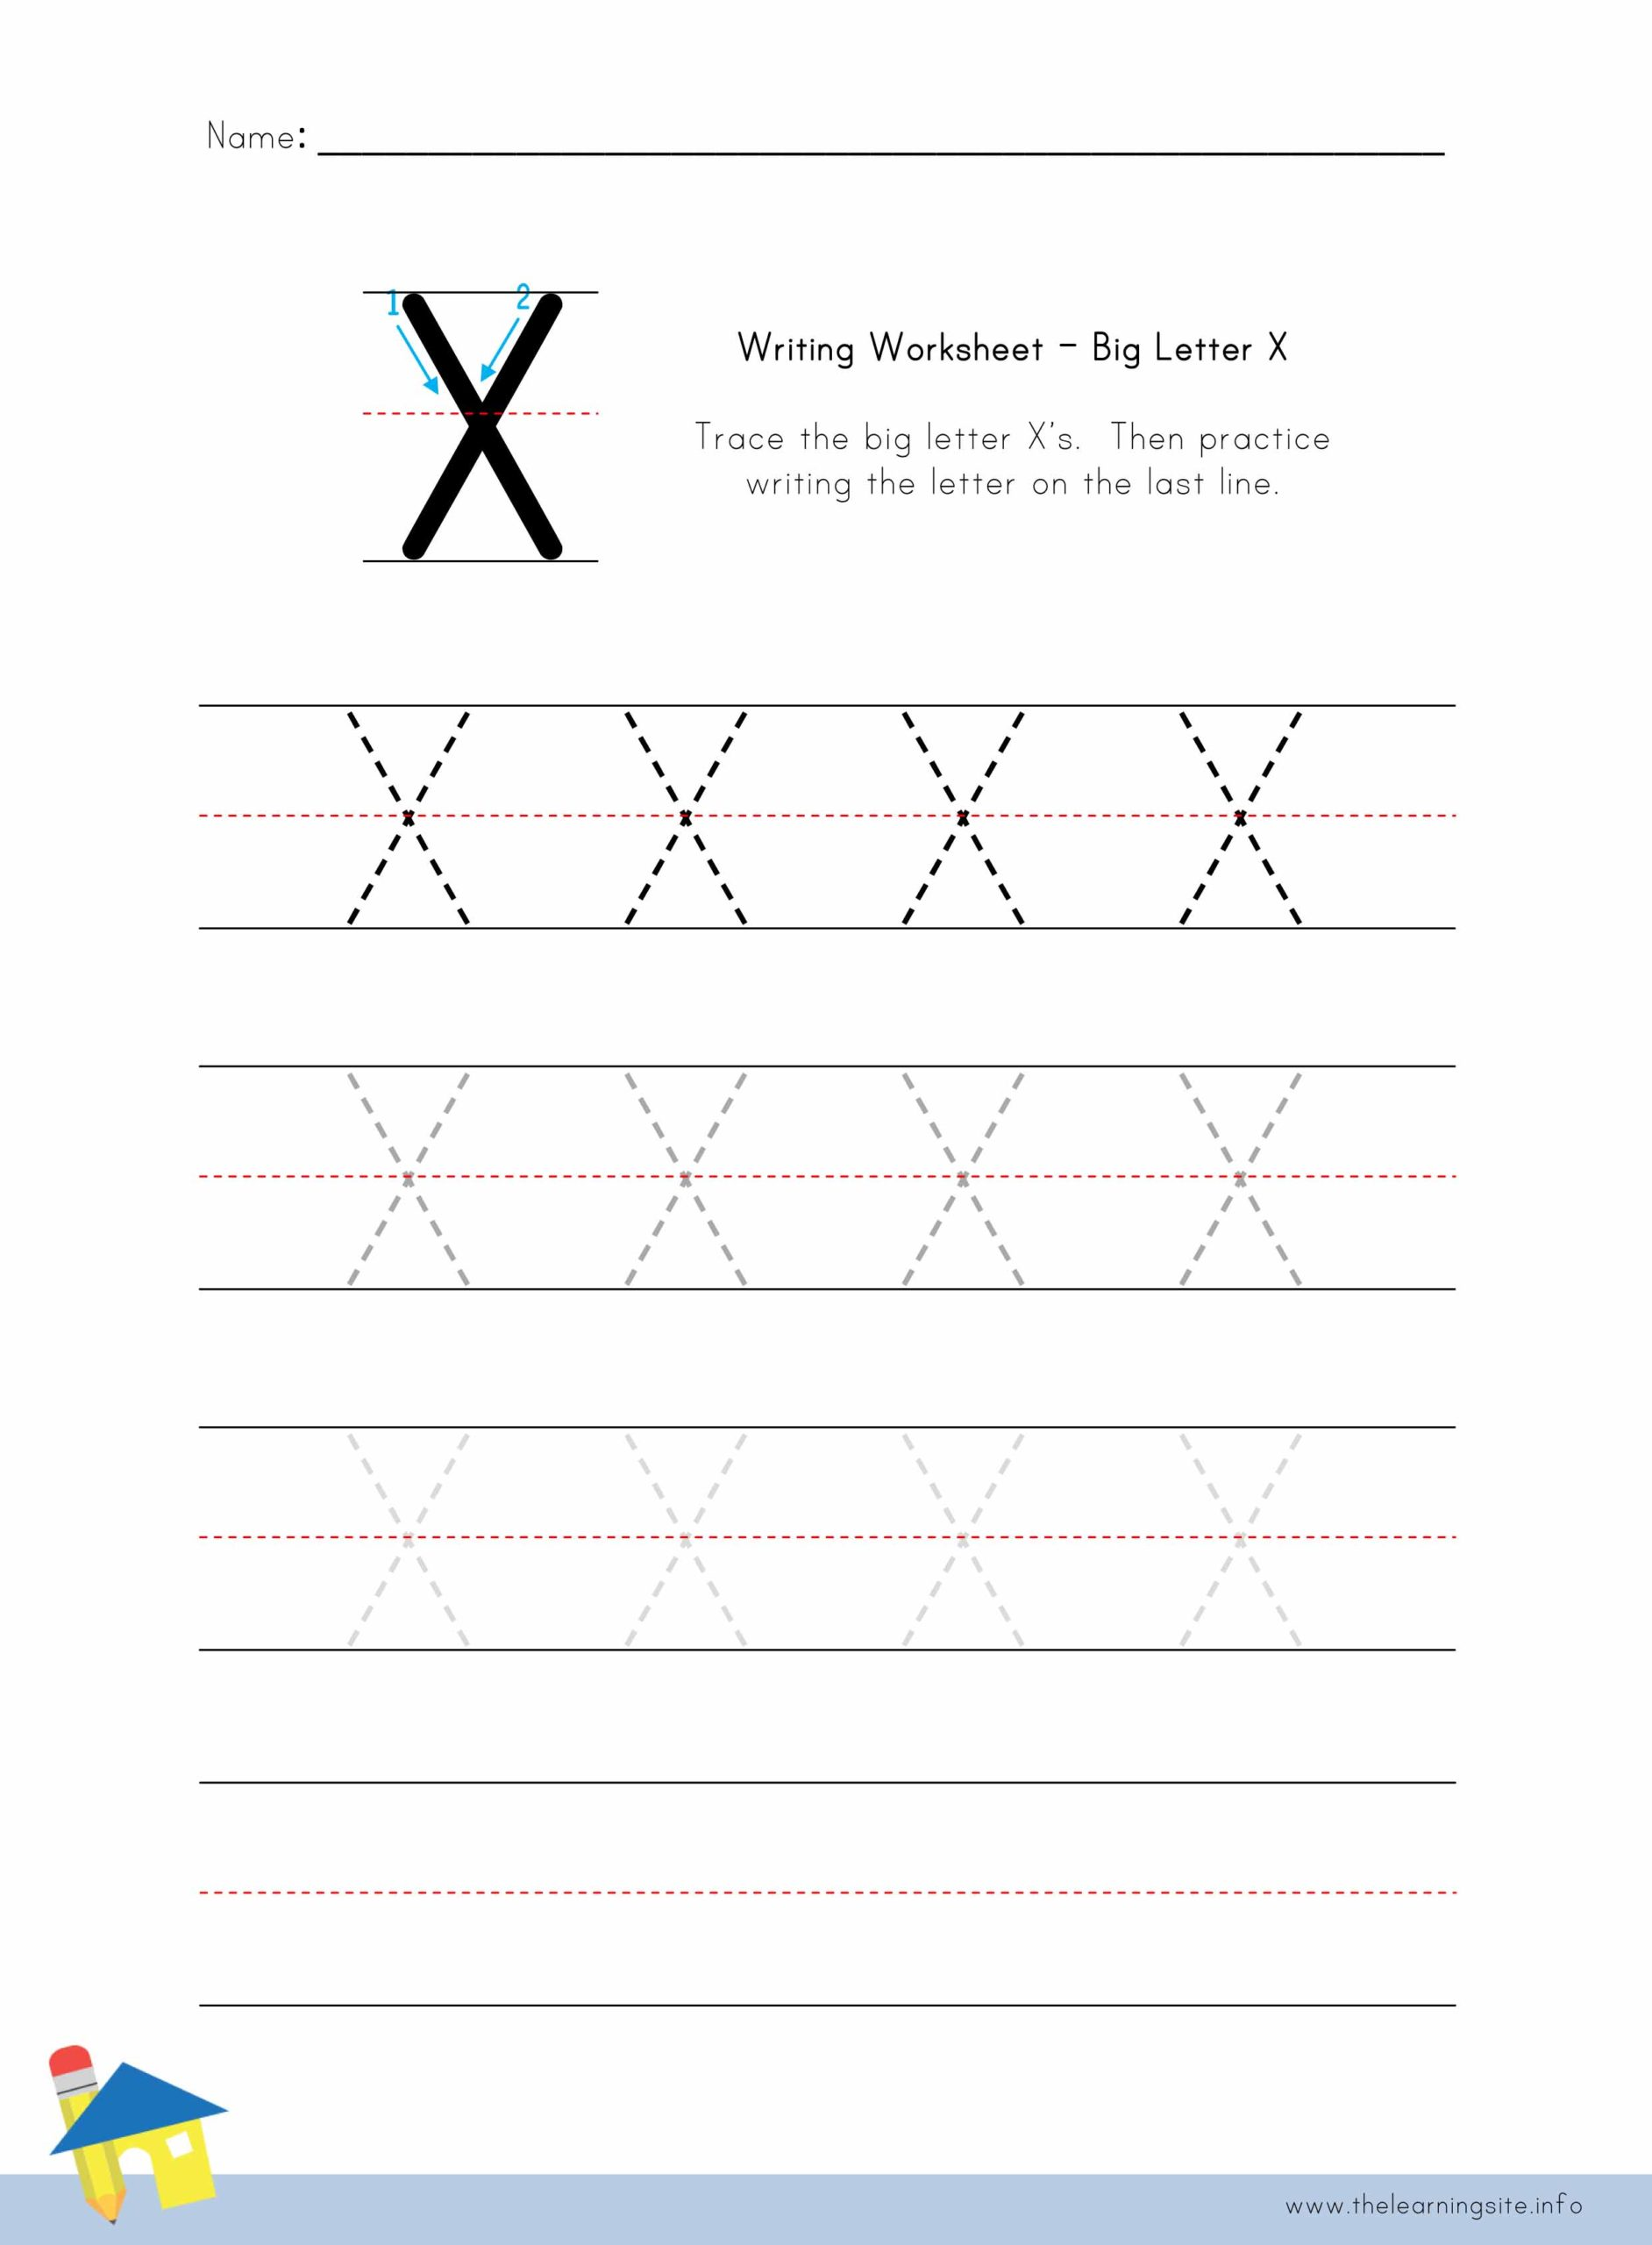 Big Letter X Writing Worksheet The Learning Site